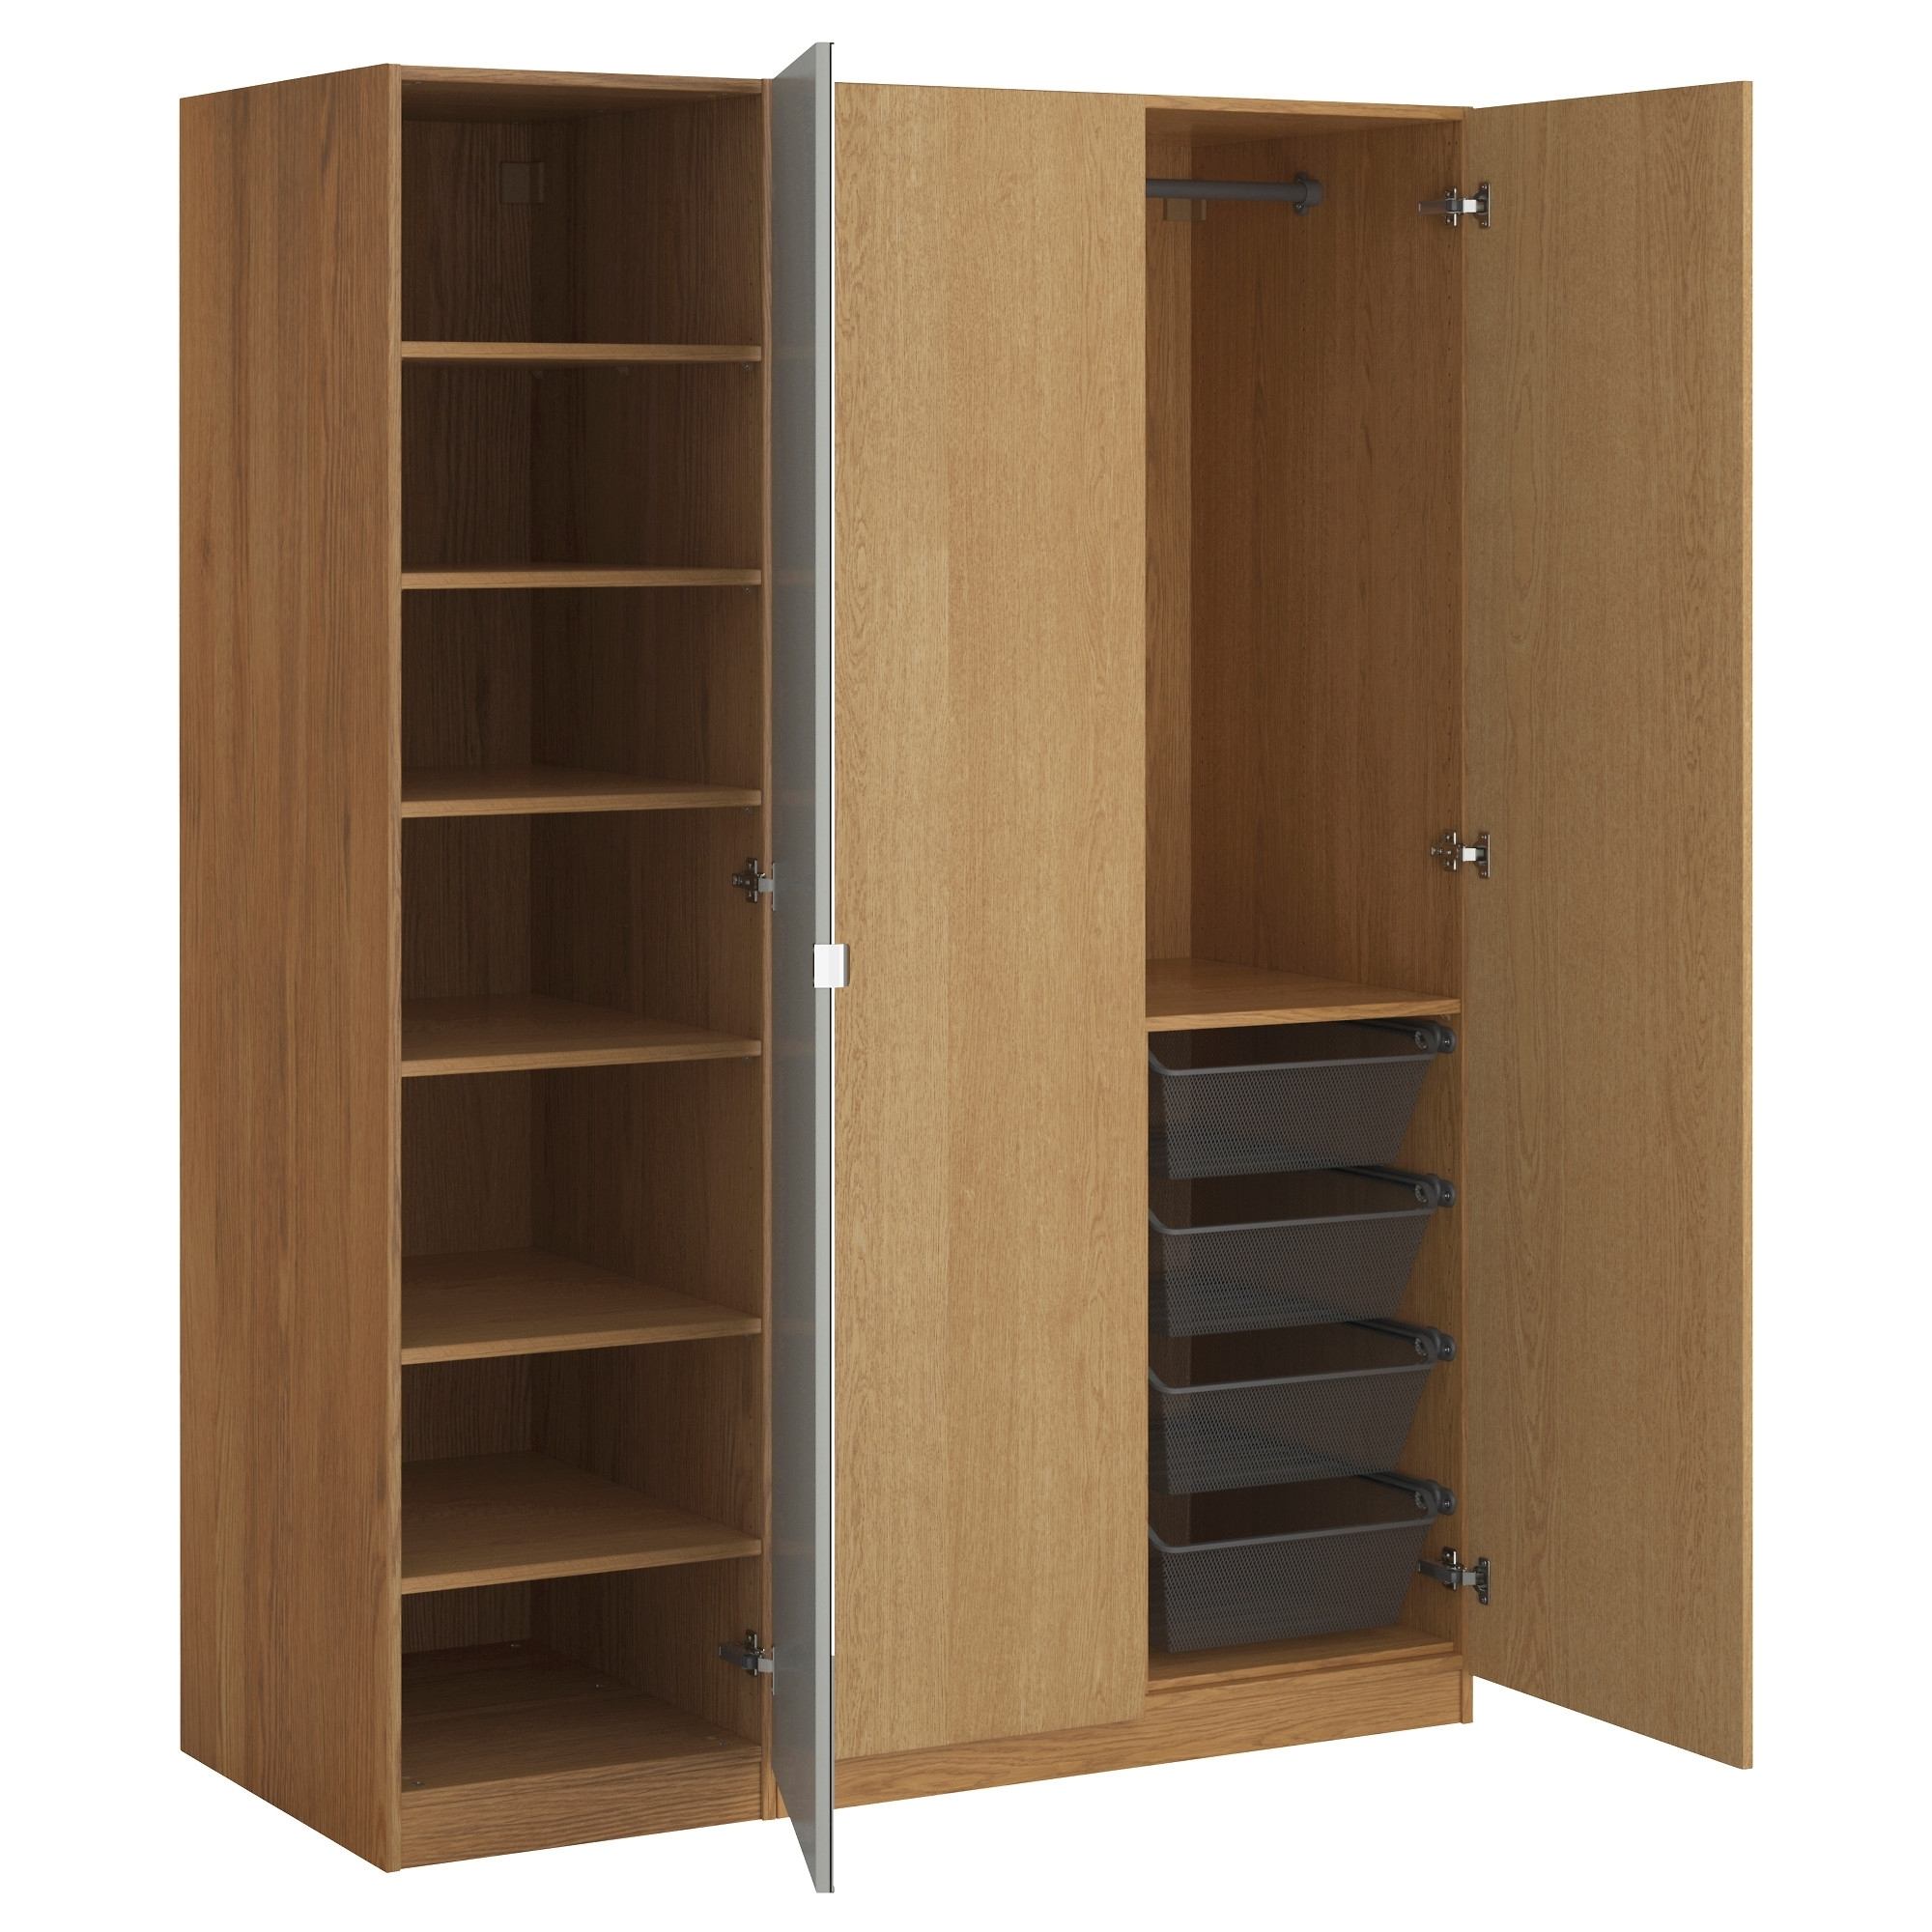 Nightstand : Beautiful Pax Wardrobe Assembled In Bathroom Bromley Regarding 2018 Cheap Wardrobes Sets (View 14 of 15)